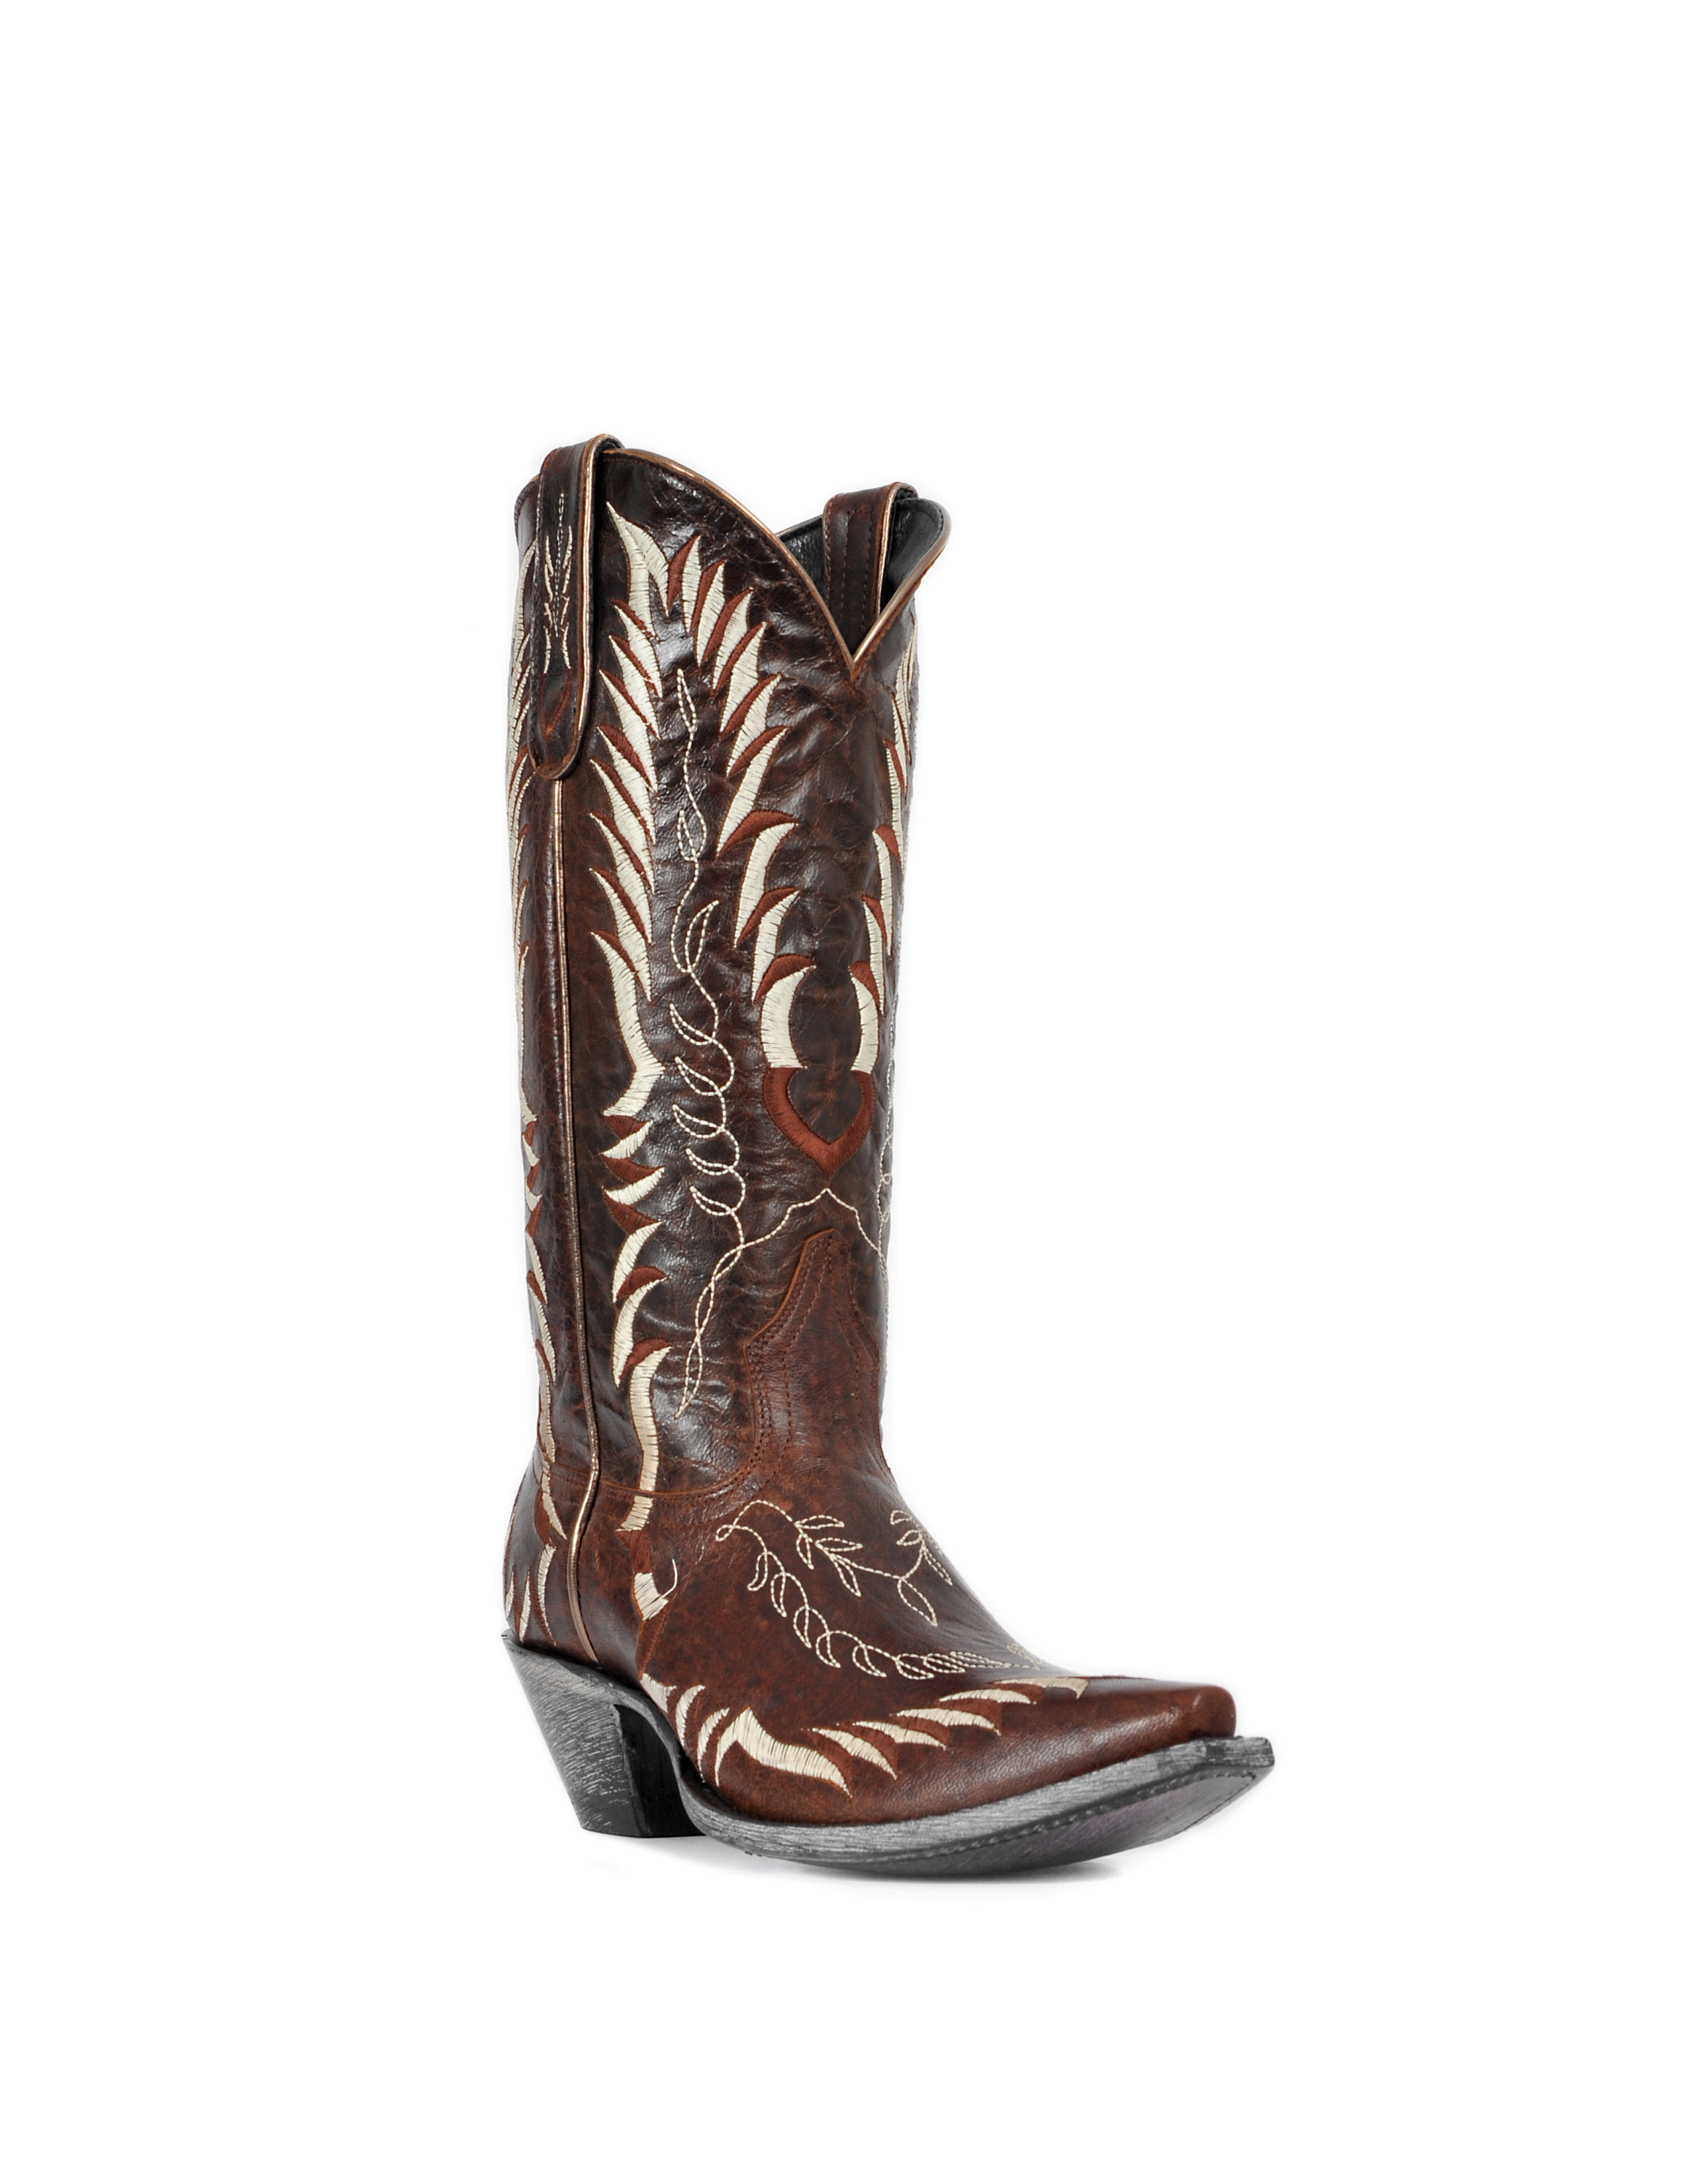 Johnny Ringo Women's Oklahoma Brown Snip Toe Cowgirl Boots JR922-56T